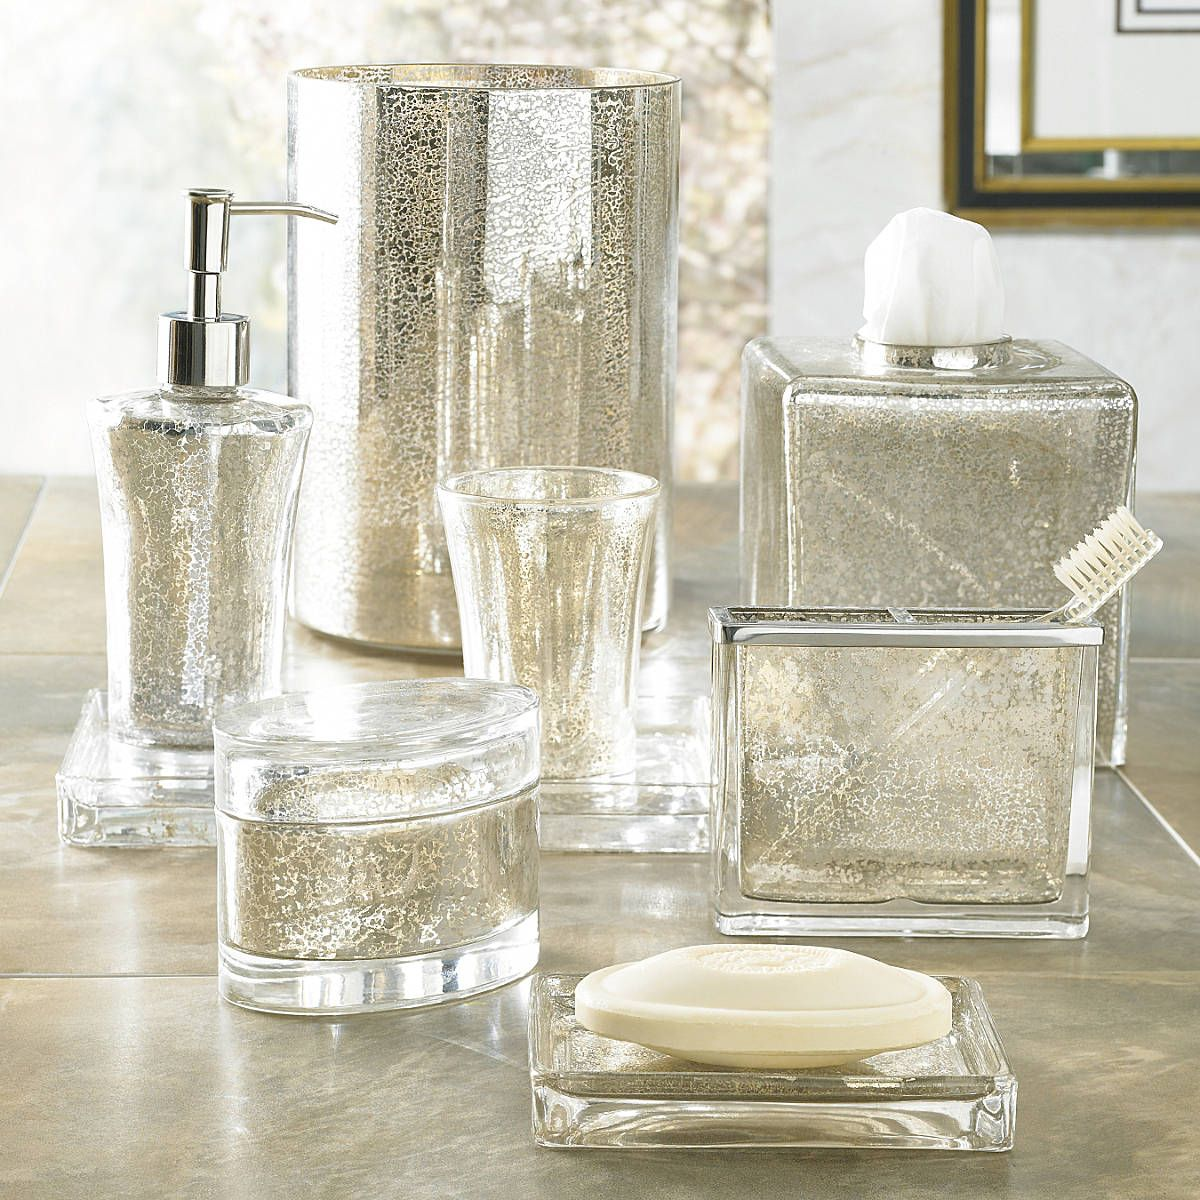 Luxury Bathroom Accessories Sets Designer Bath Accessories